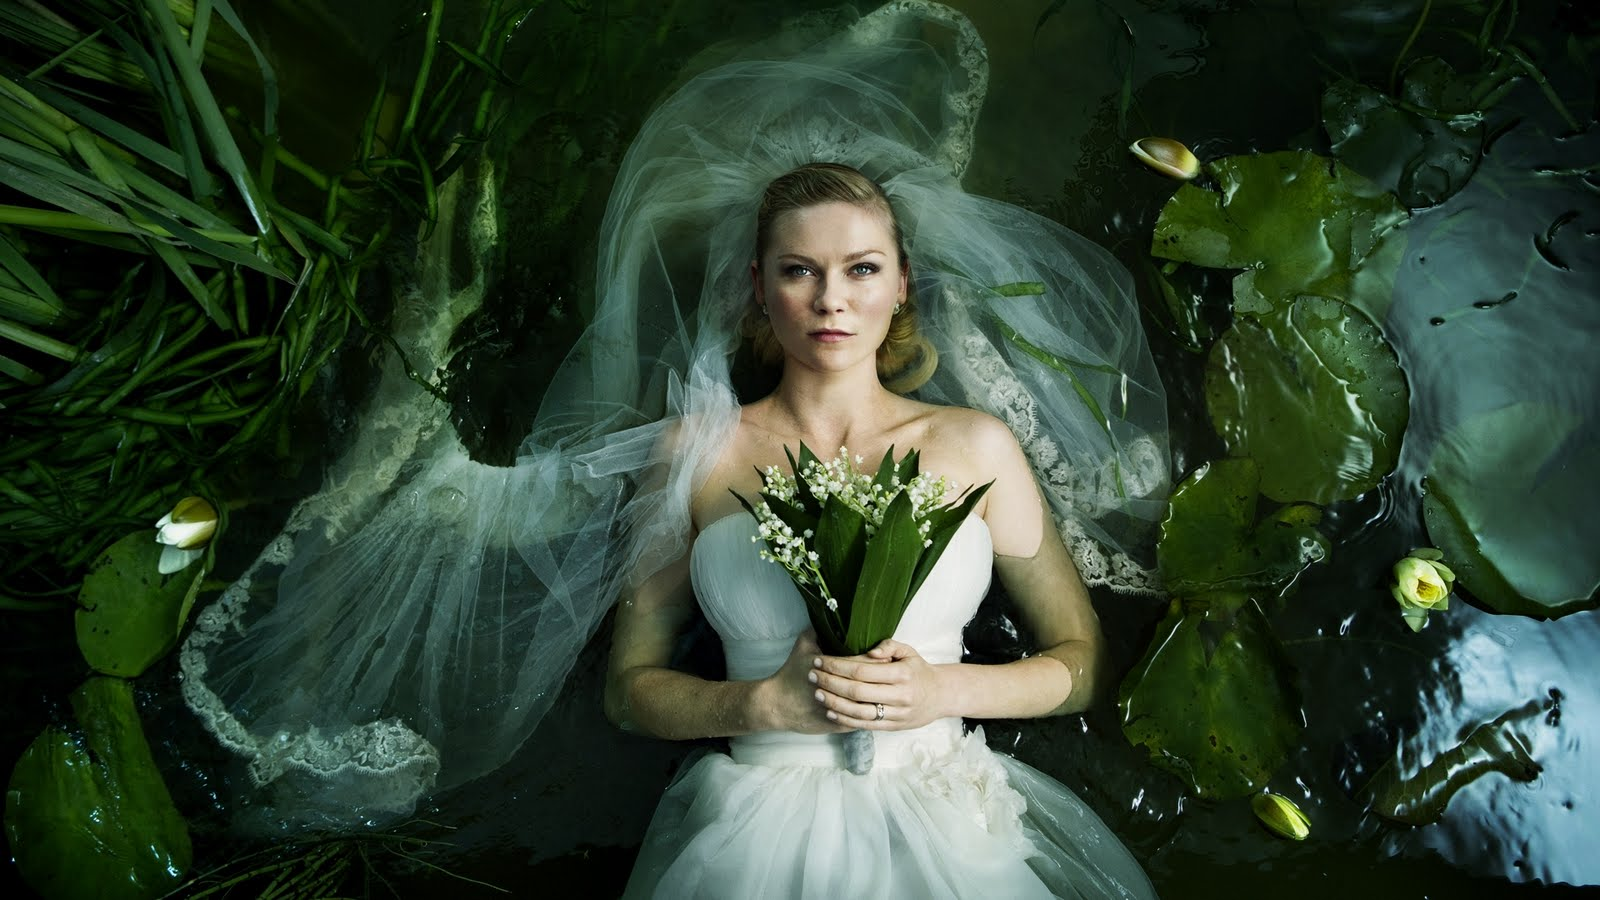 http://4.bp.blogspot.com/-oTEWOX6rr7c/Tj9QUQUgv0I/AAAAAAAAAGw/Jokxc0CoUQo/s1600/Kirsten-Dunst-in-Melancholia-Movie-2011-HD-Wallpapers-fullscreen-widescreen-desktop-background-1920-1080.jpg